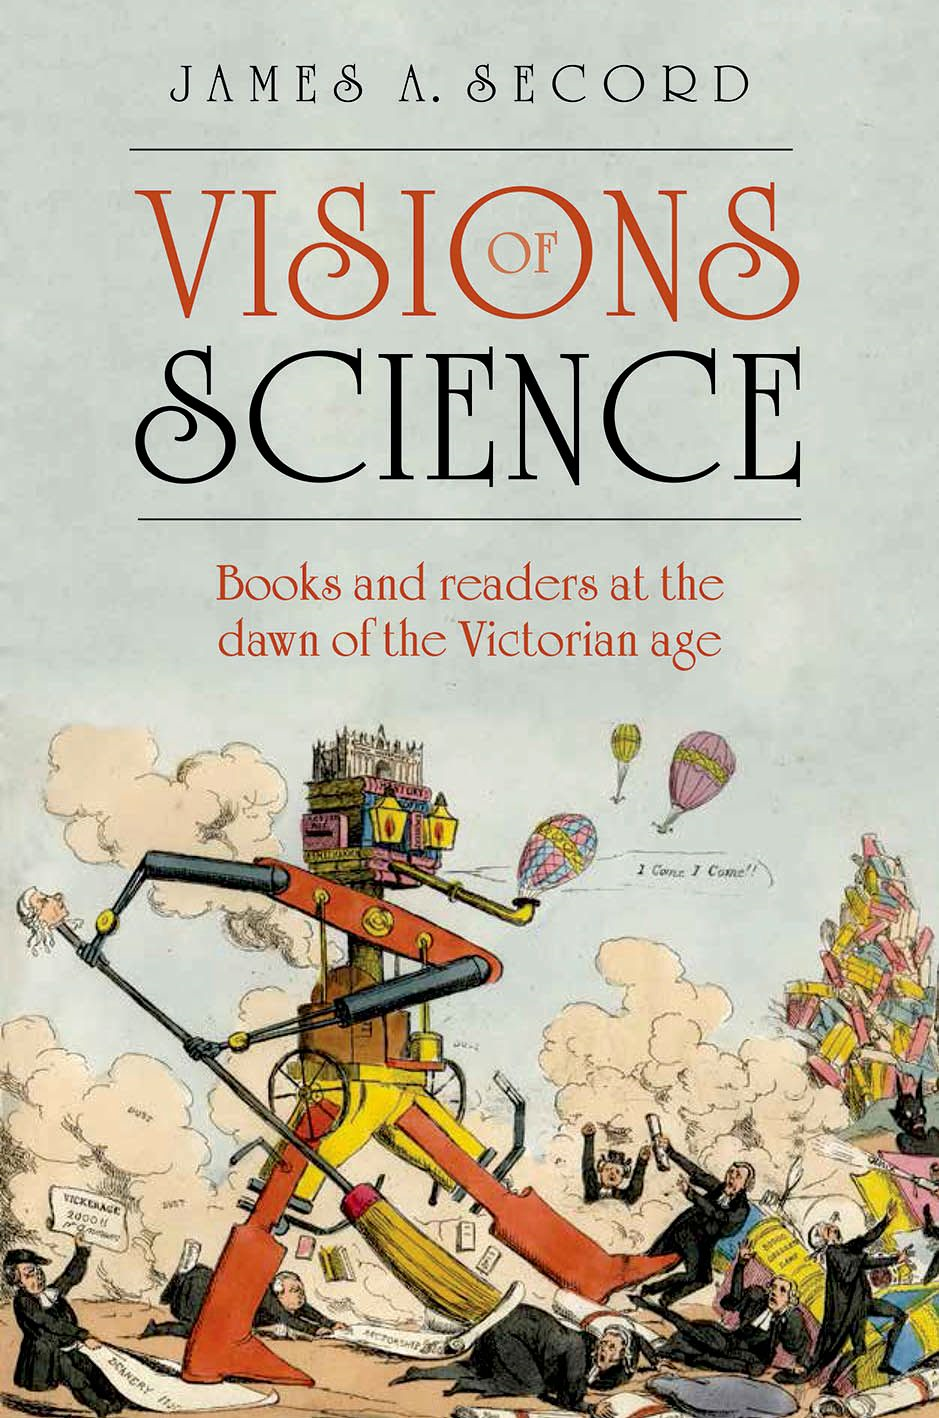 Visions of Science: Books and readers at the dawn of the Victorian age